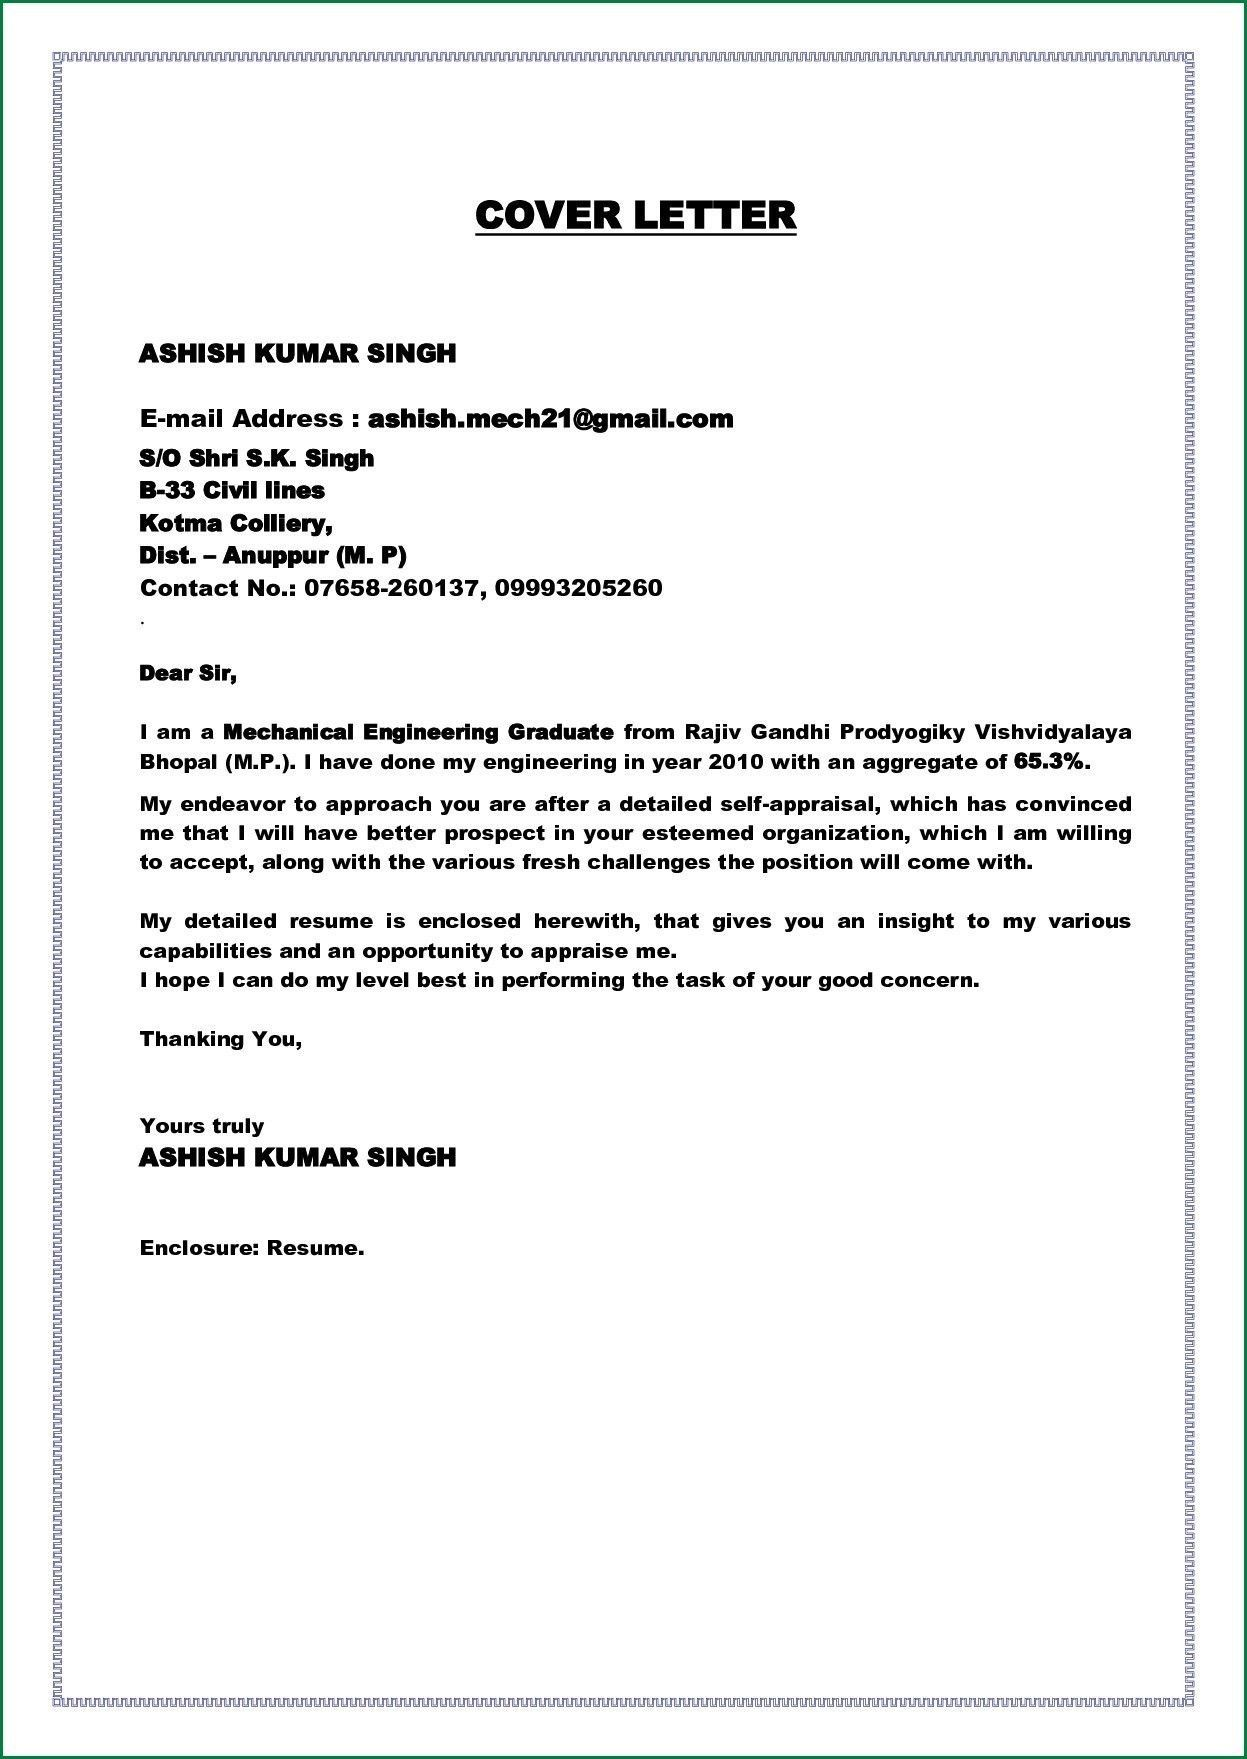 005 Fearsome Cover Letter Sample Template For Fresh Graduate In Marketing Concept Full